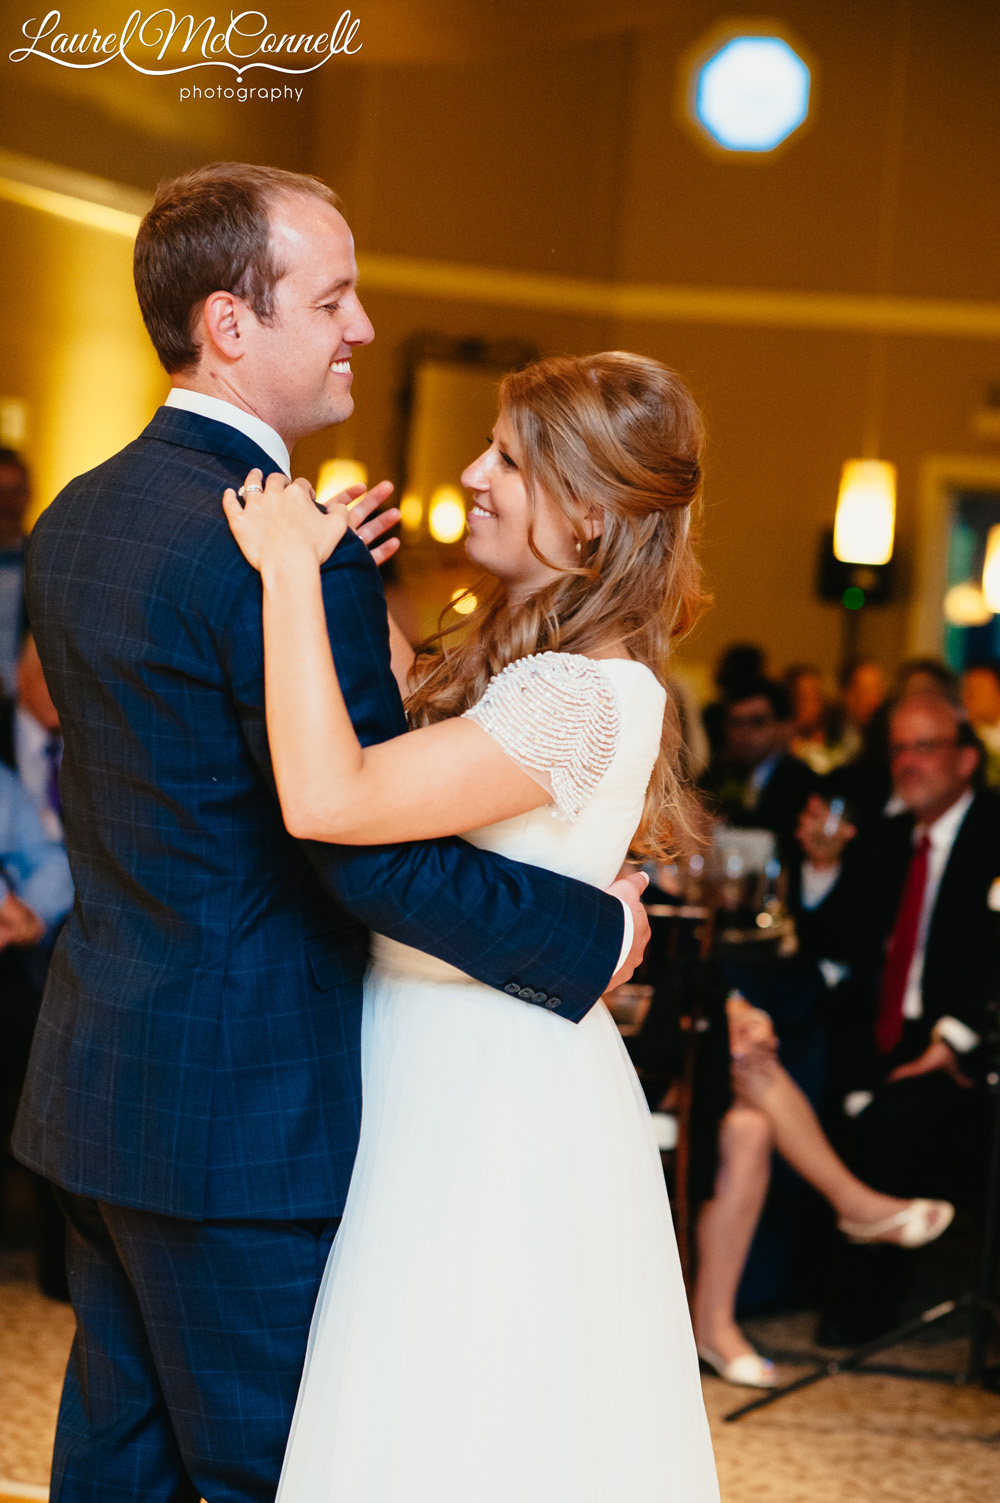 Lovely portrait of bride and groom's first dance at Columbia Winery wedding reception photographed by Laurel McConnell Photography.